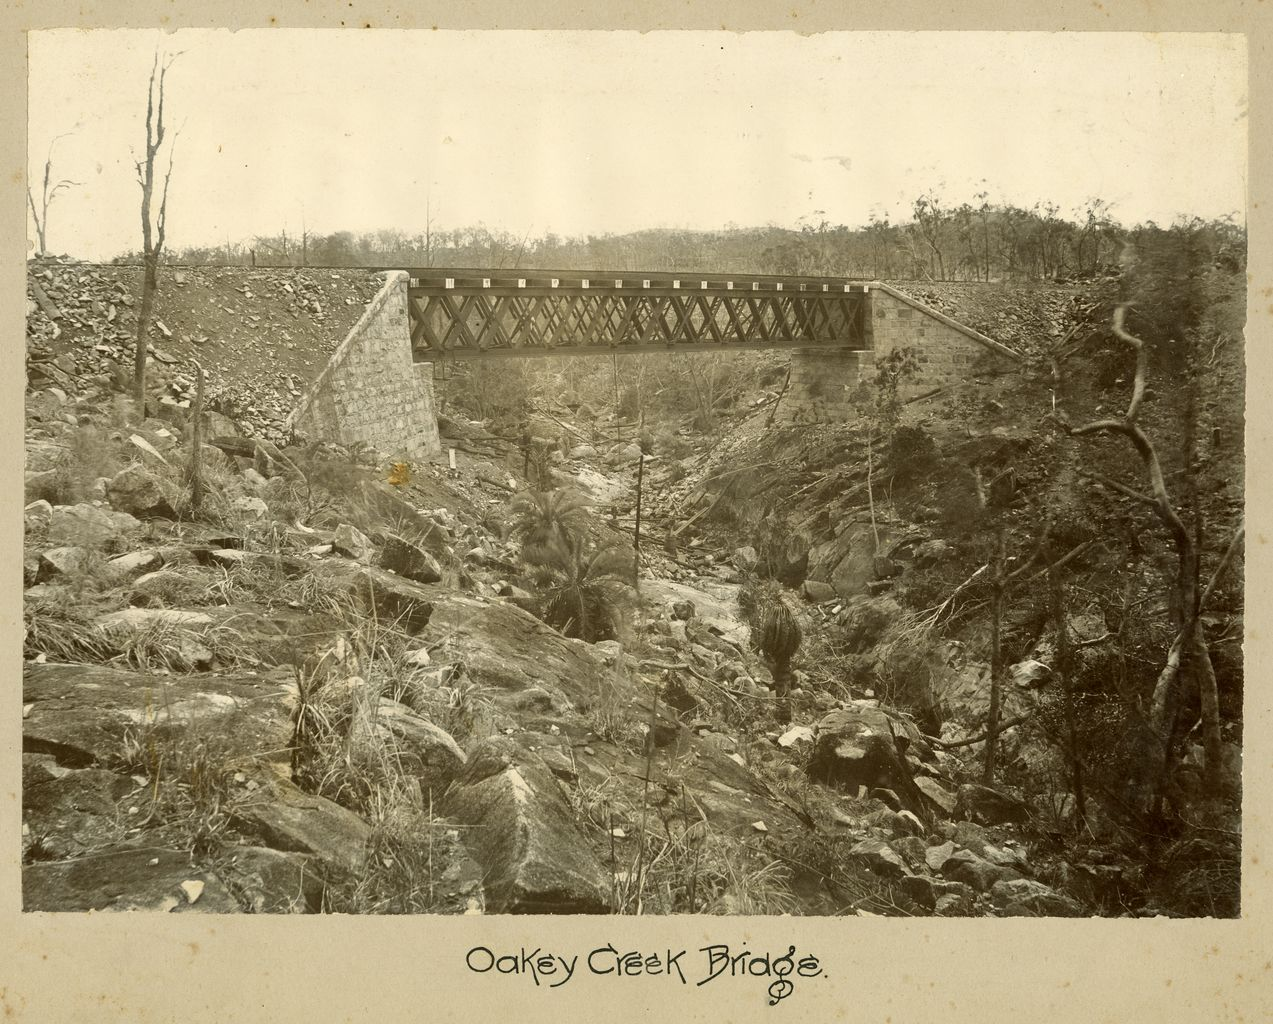 Image of Oakey Creek Bridge.